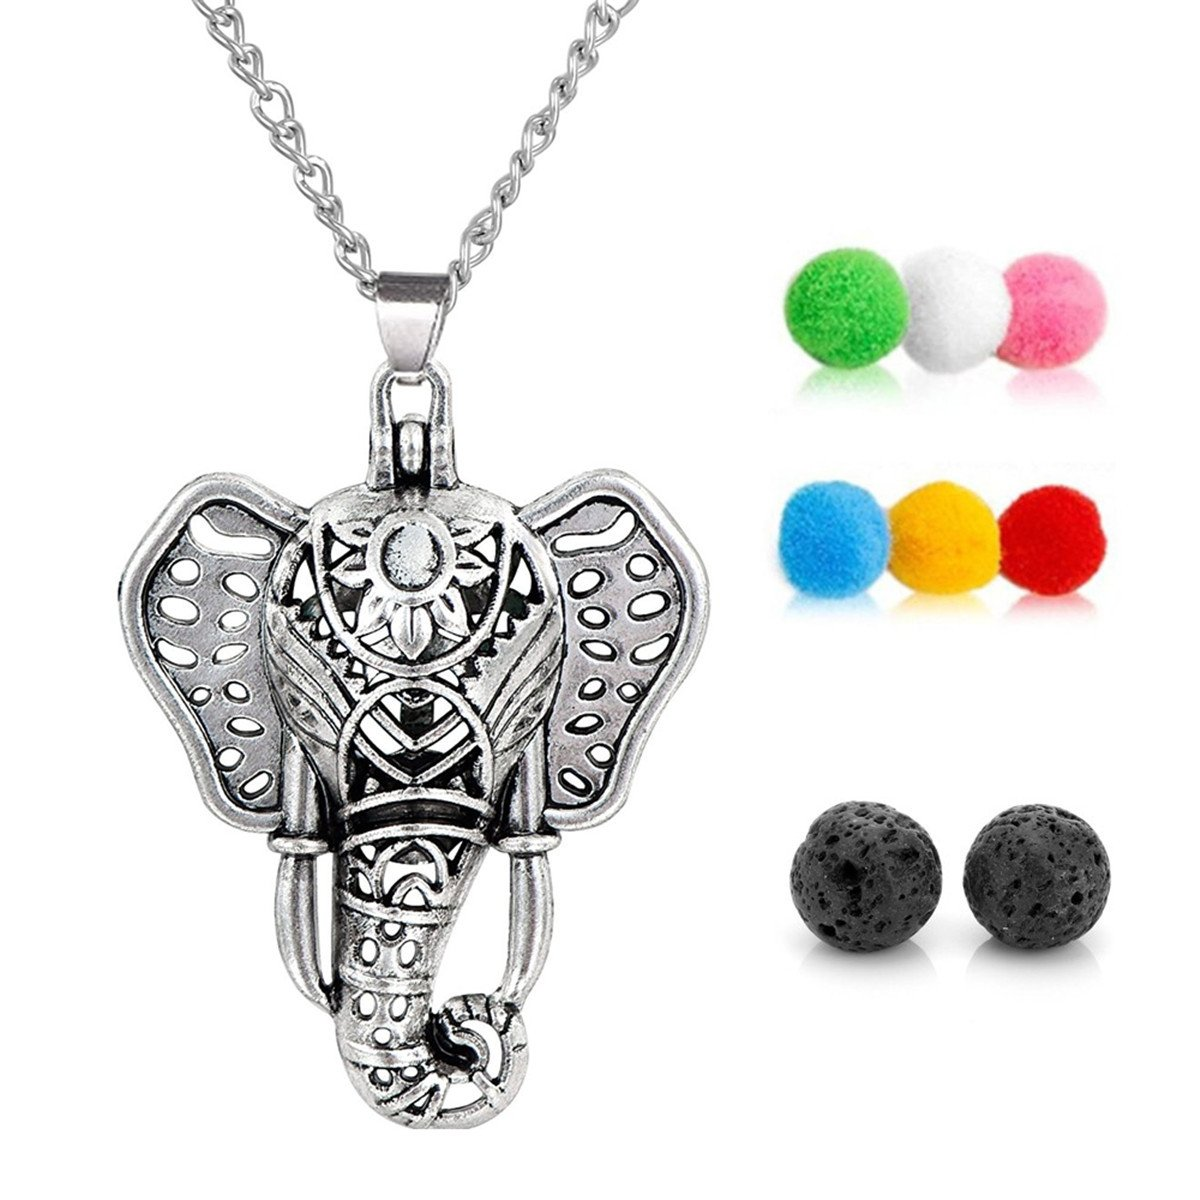 GraceAngie Antique Silver Luck Elephant Locket Lava Stones Perfume Fragrance Essential Oil Aromatherapy Diffuser Charms Pendant Necklace with Colorful Pads 53408-N